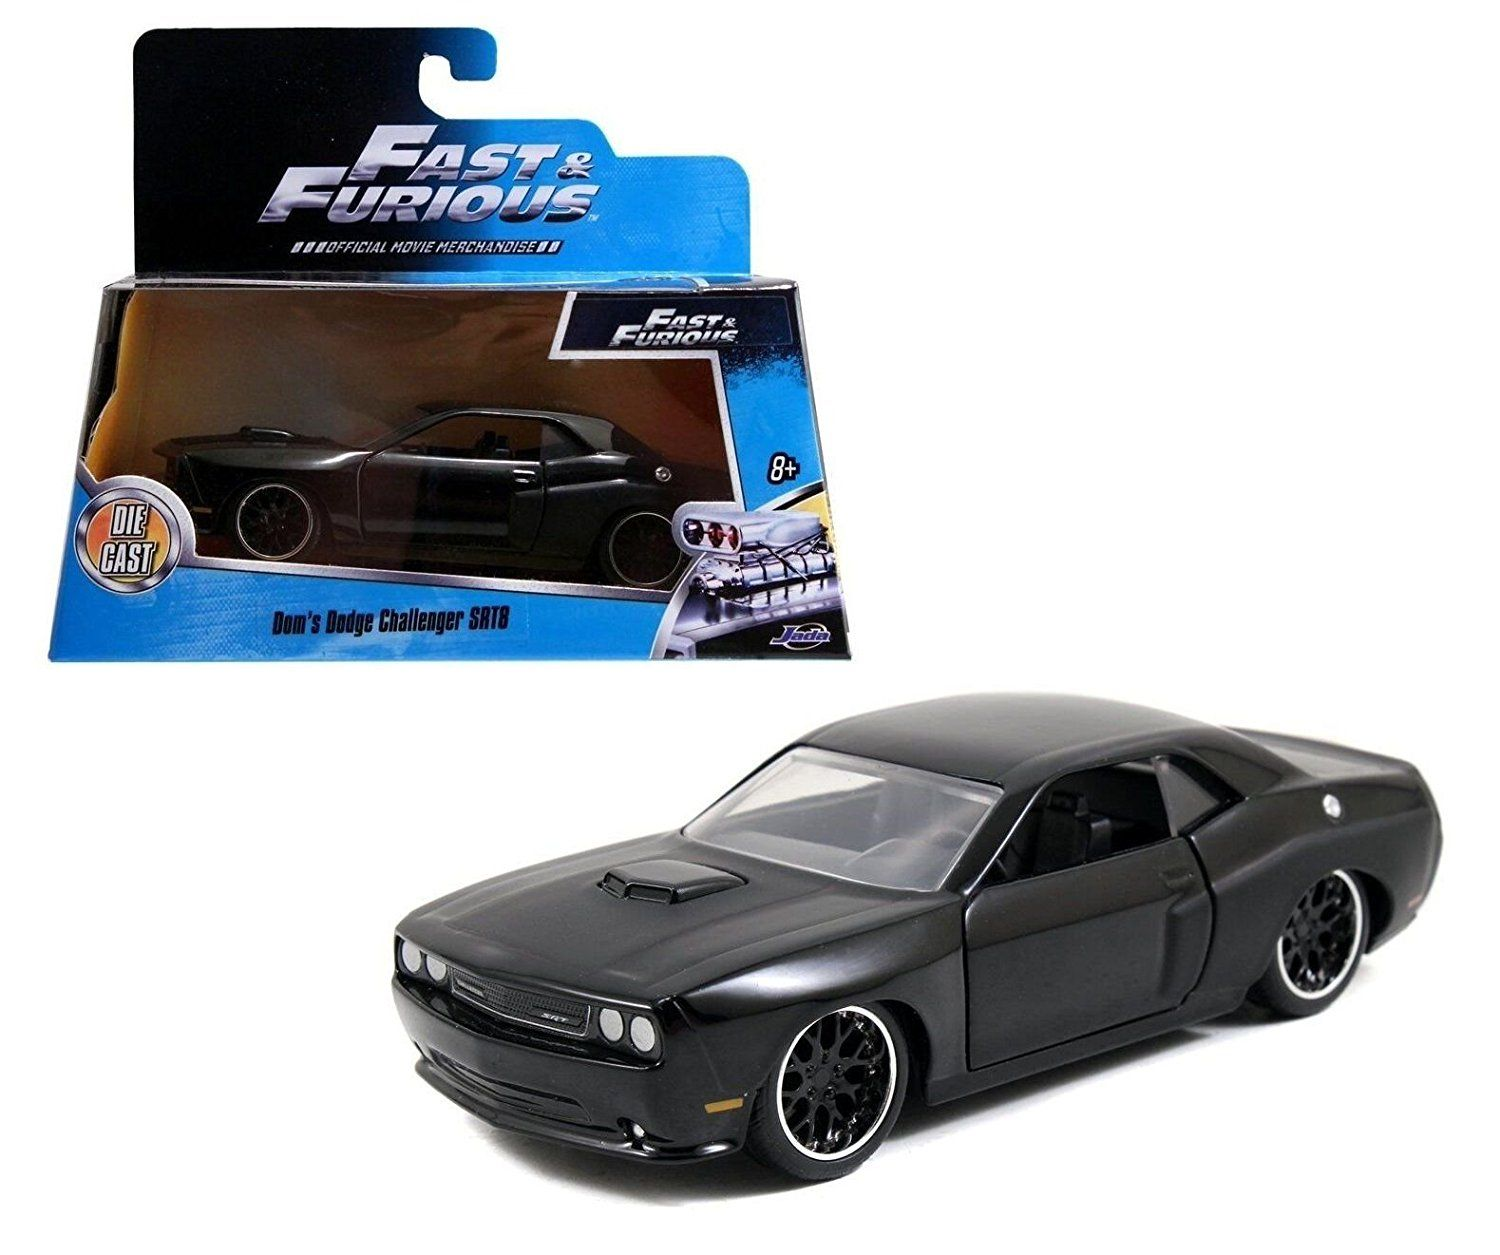 Jada toys fast and furious 1 24 scale die cast dodge challenger jada toys pinterest dodge challenger scale and toy